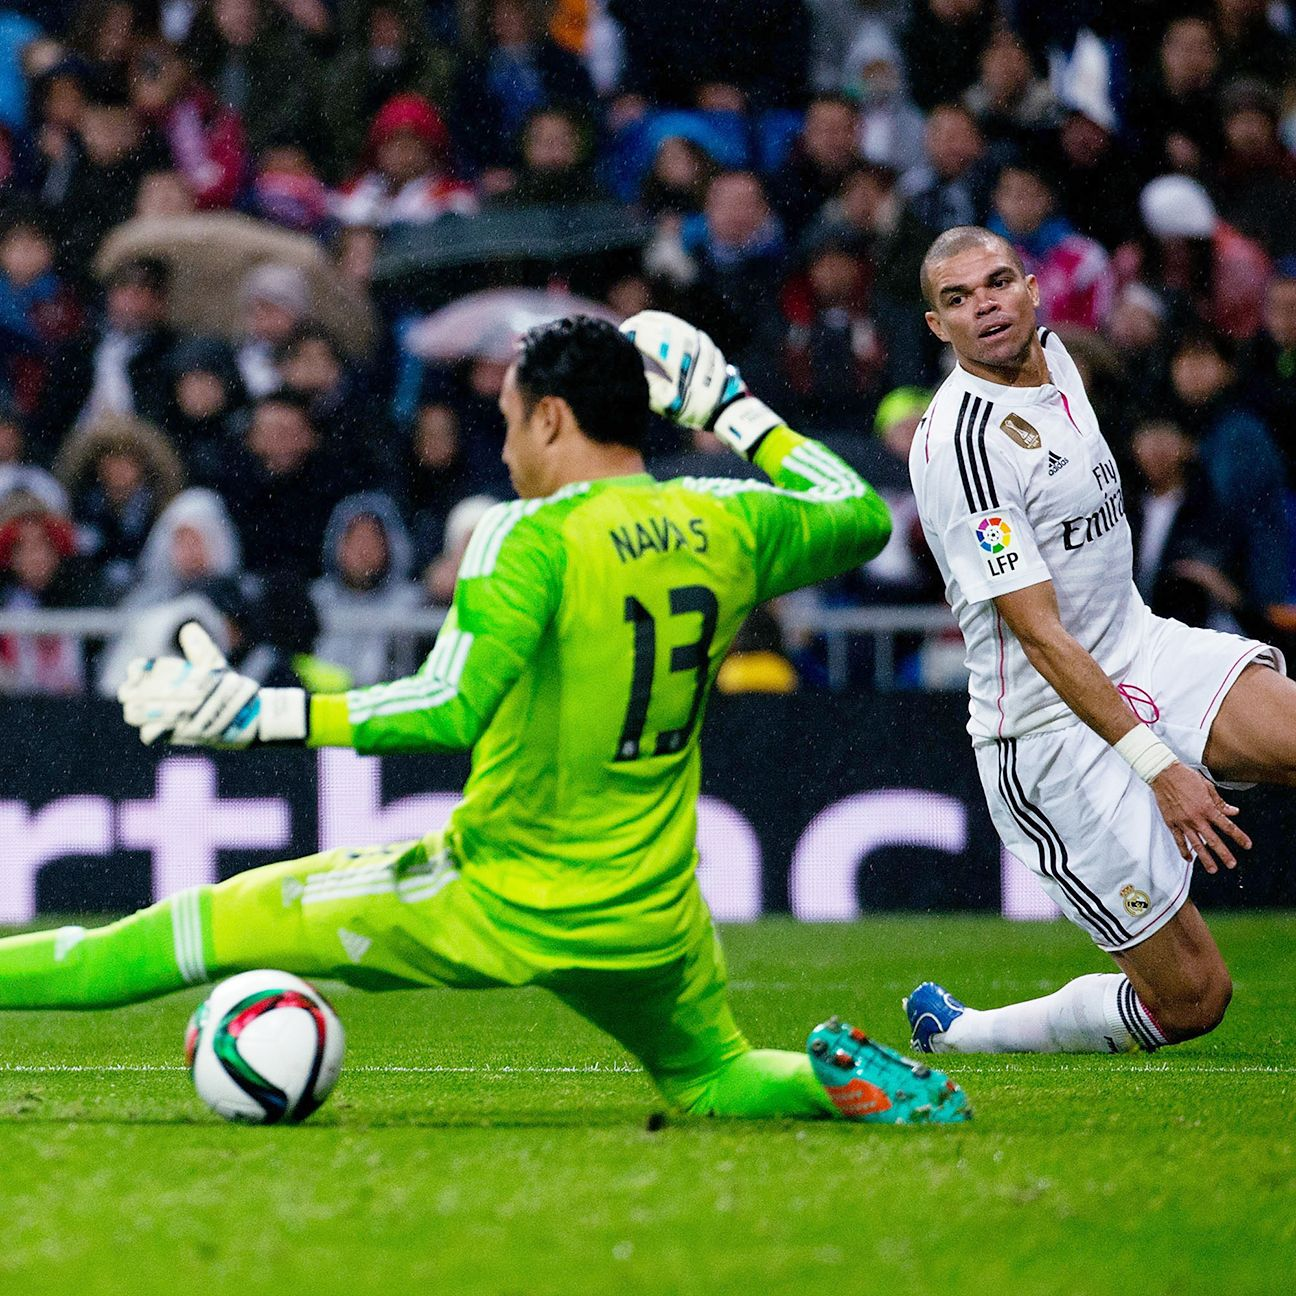 Pepe could only watch helplessly after sliding past Fernando Torres, who all but sealed Real Madrid's Copa del Rey fate with an early second half goal.